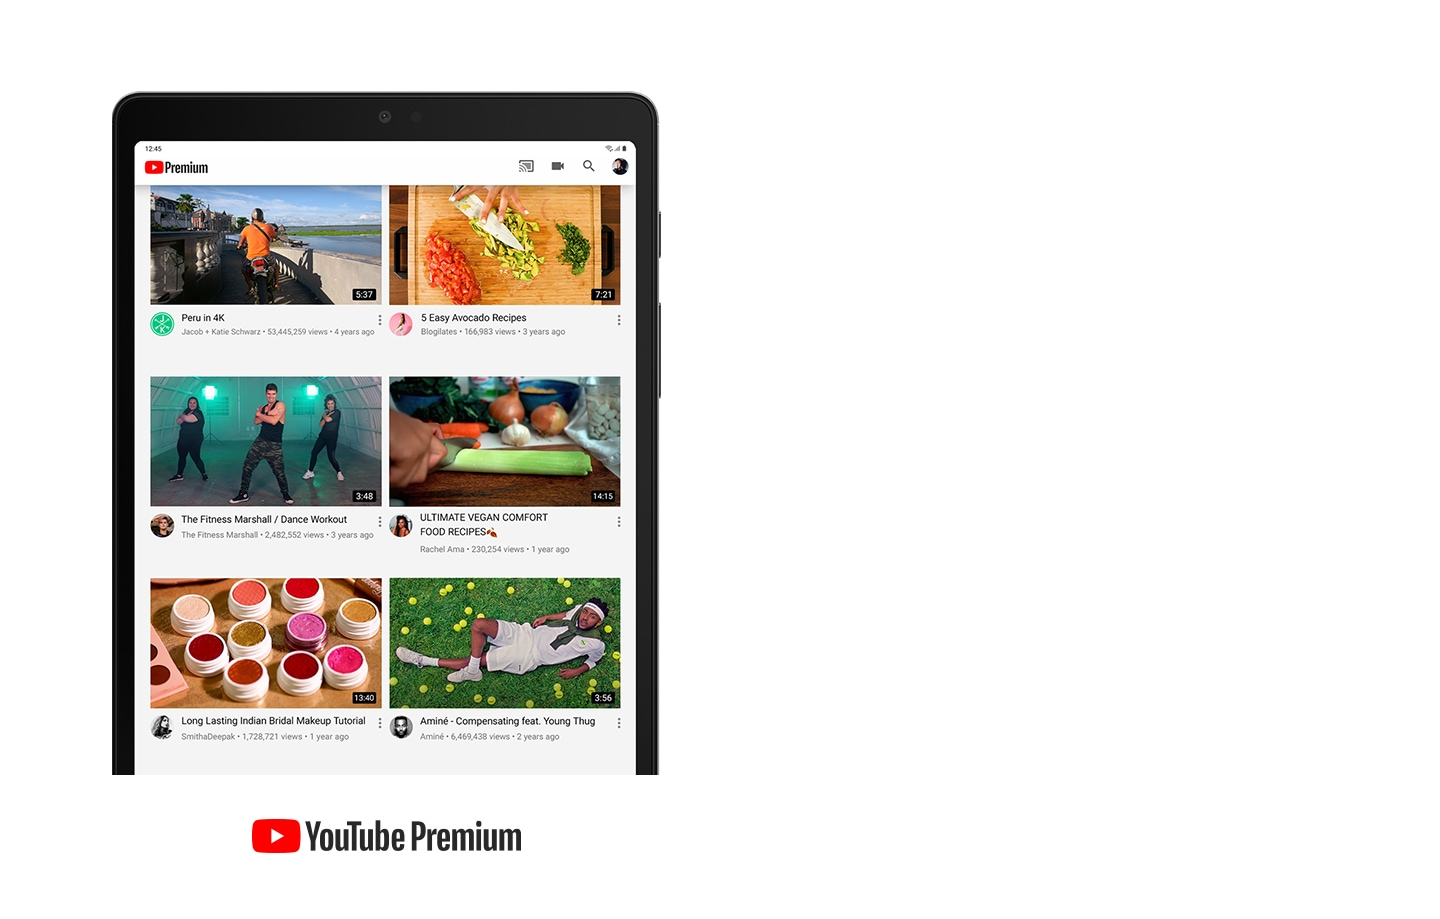 YouTube is displayed on Galaxy Tab A7 Lite showing an assortment of YouTube Premium videos. YouTube Premium logo is displayed.